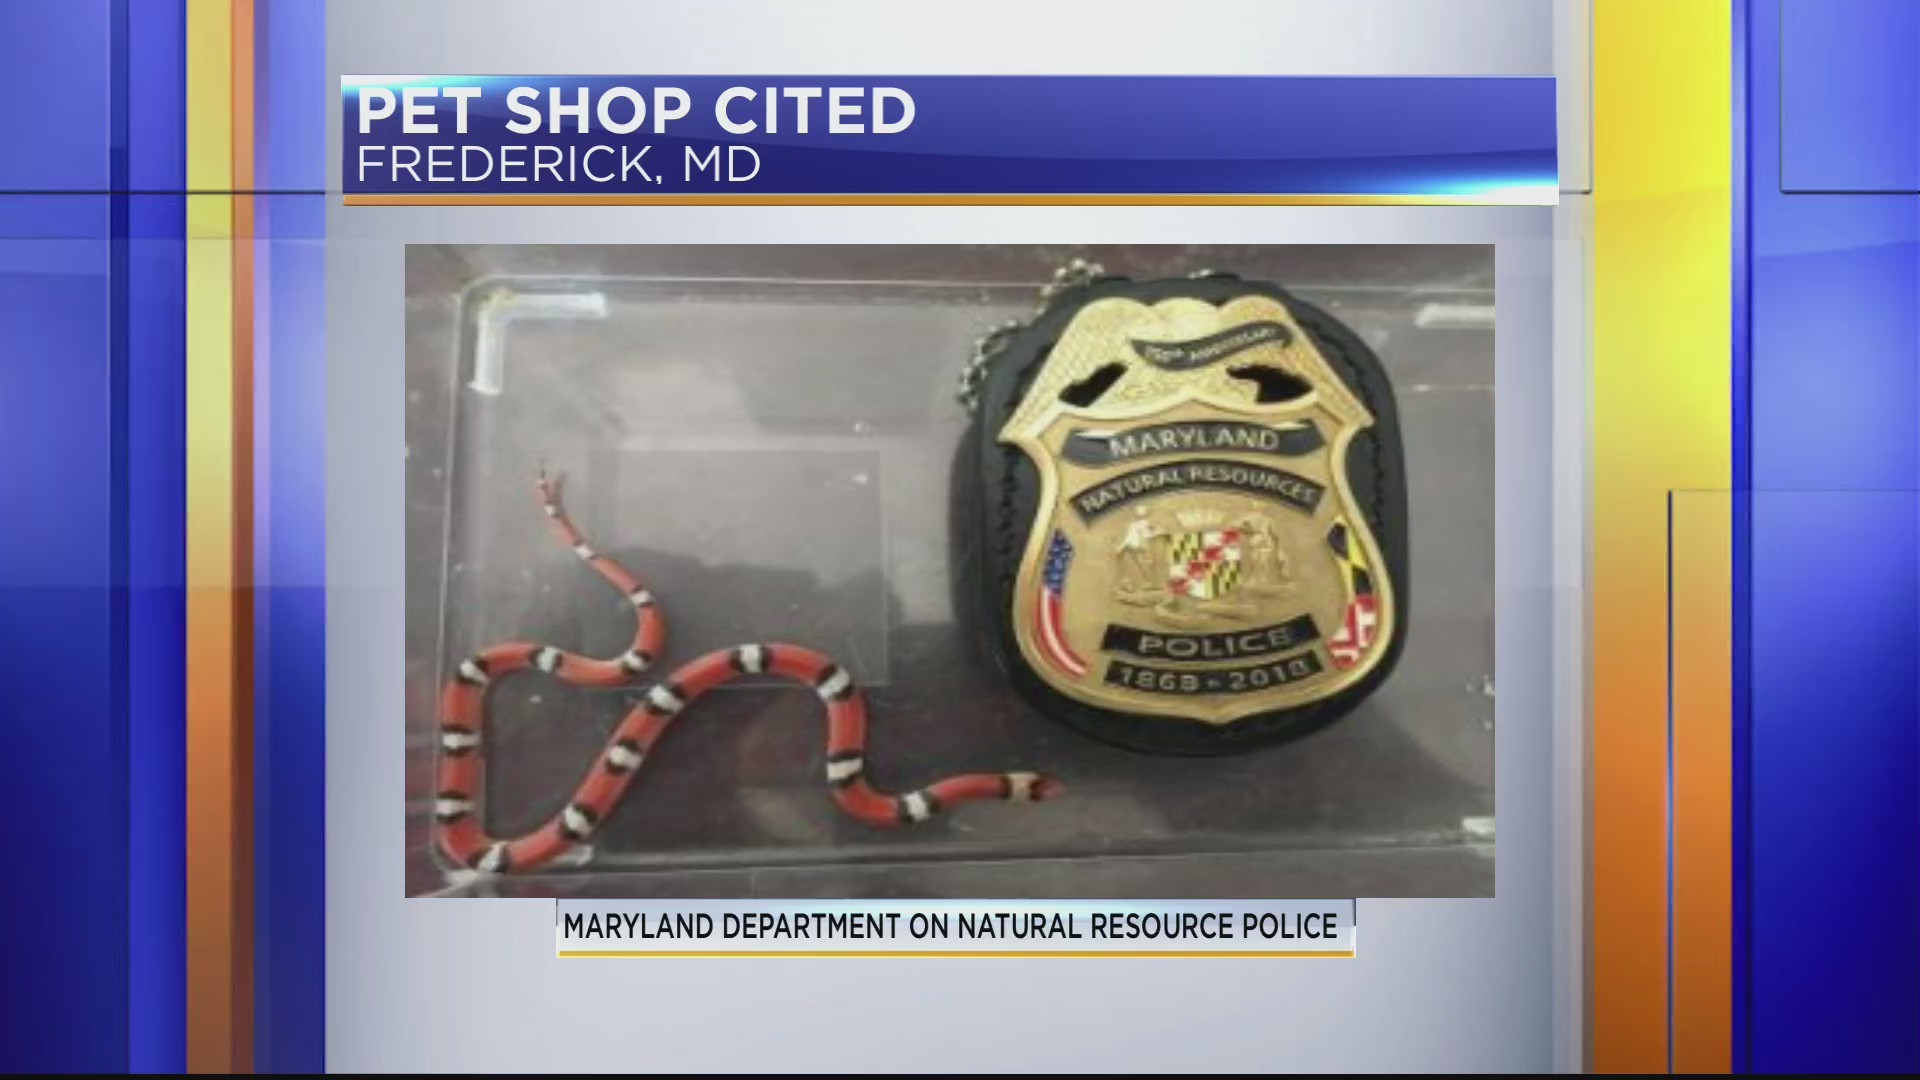 Frederick pet shop cited for selling prohibited snake